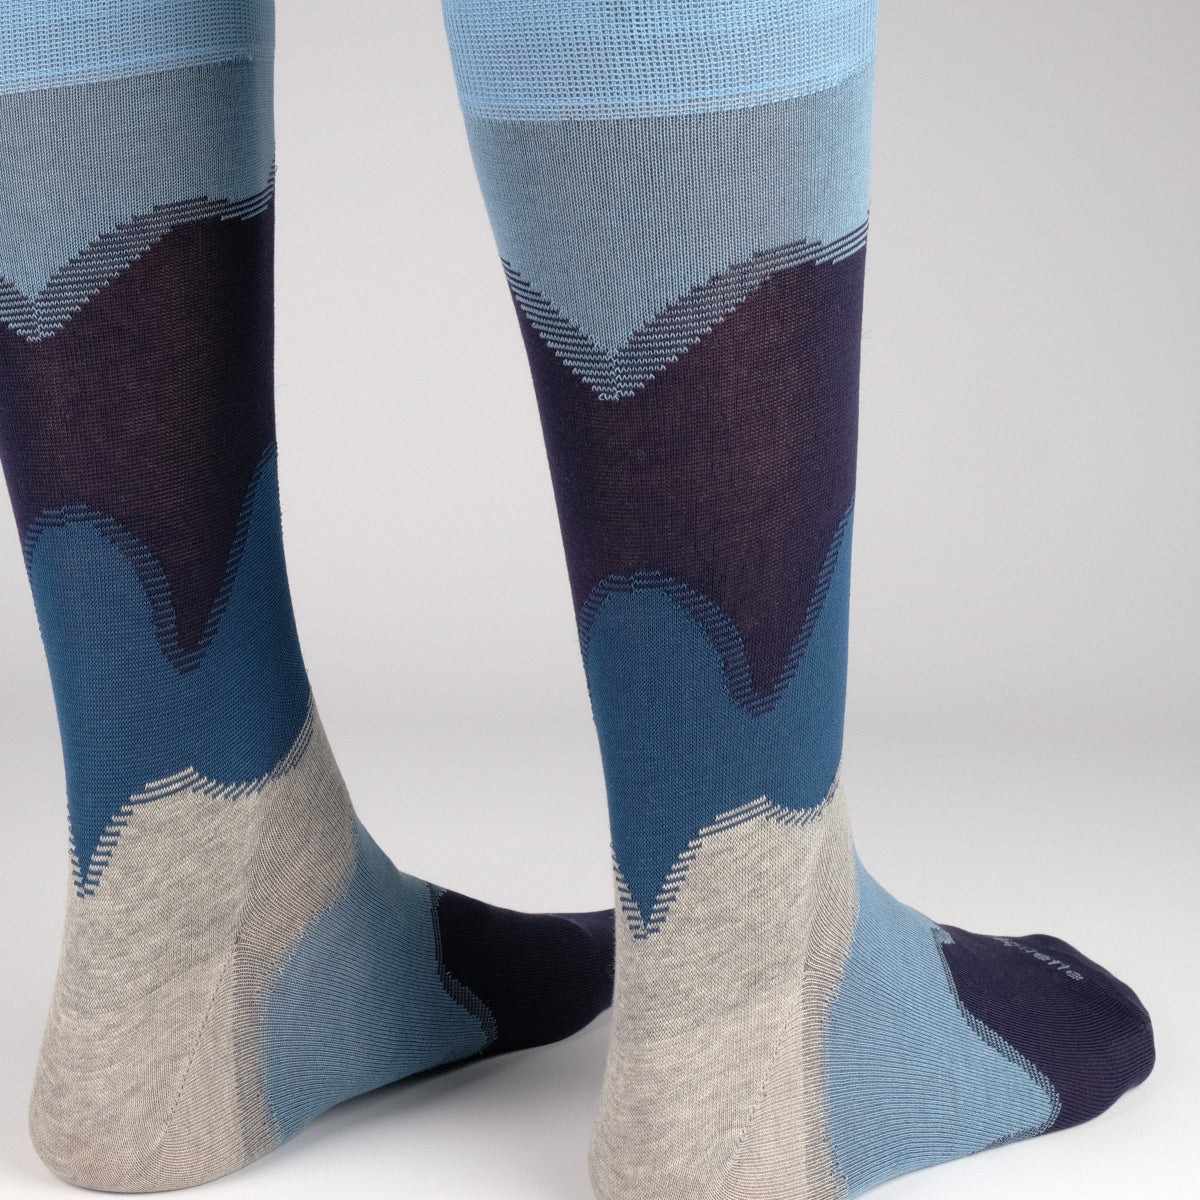 Mens Socks - Idyllic Men's Socks - Blue⎪Etiquette Clothiers